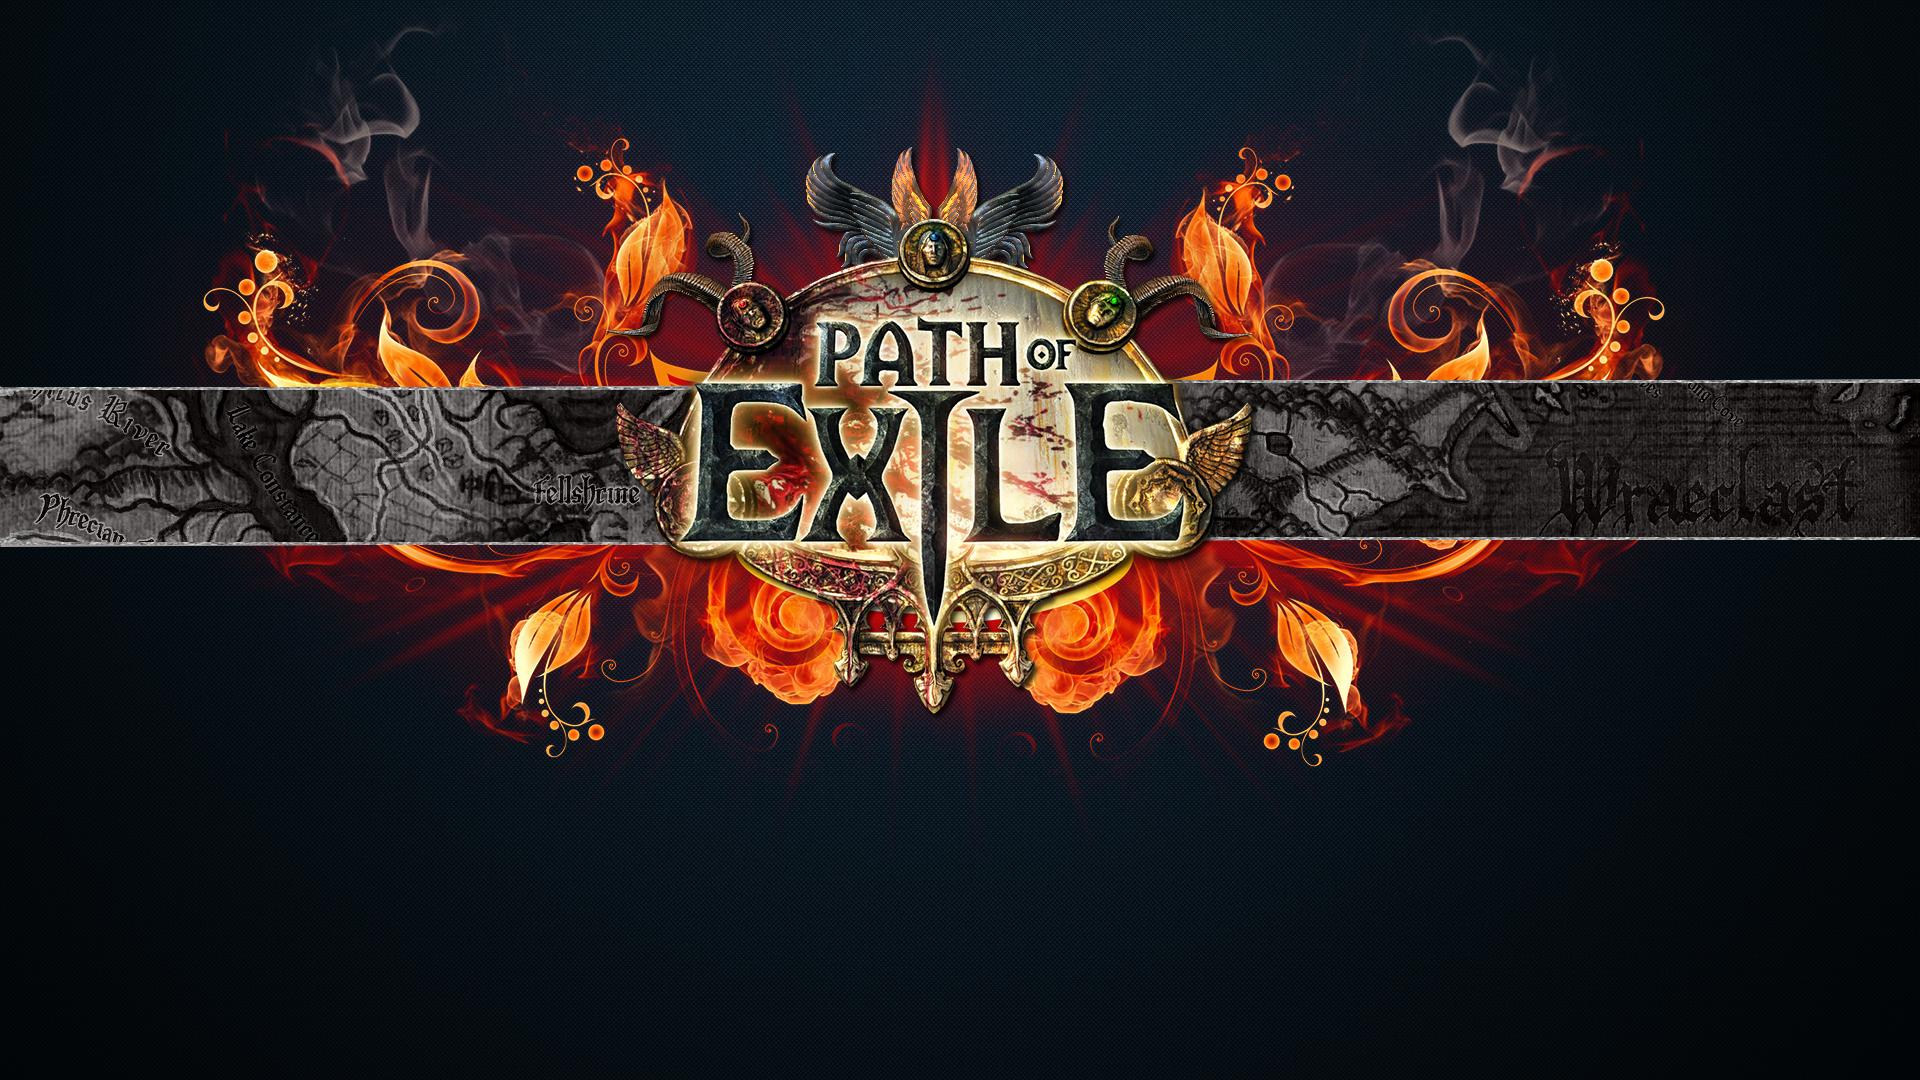 path_of_exile_mmo_game_online_map_97396_1920x1080.jpg